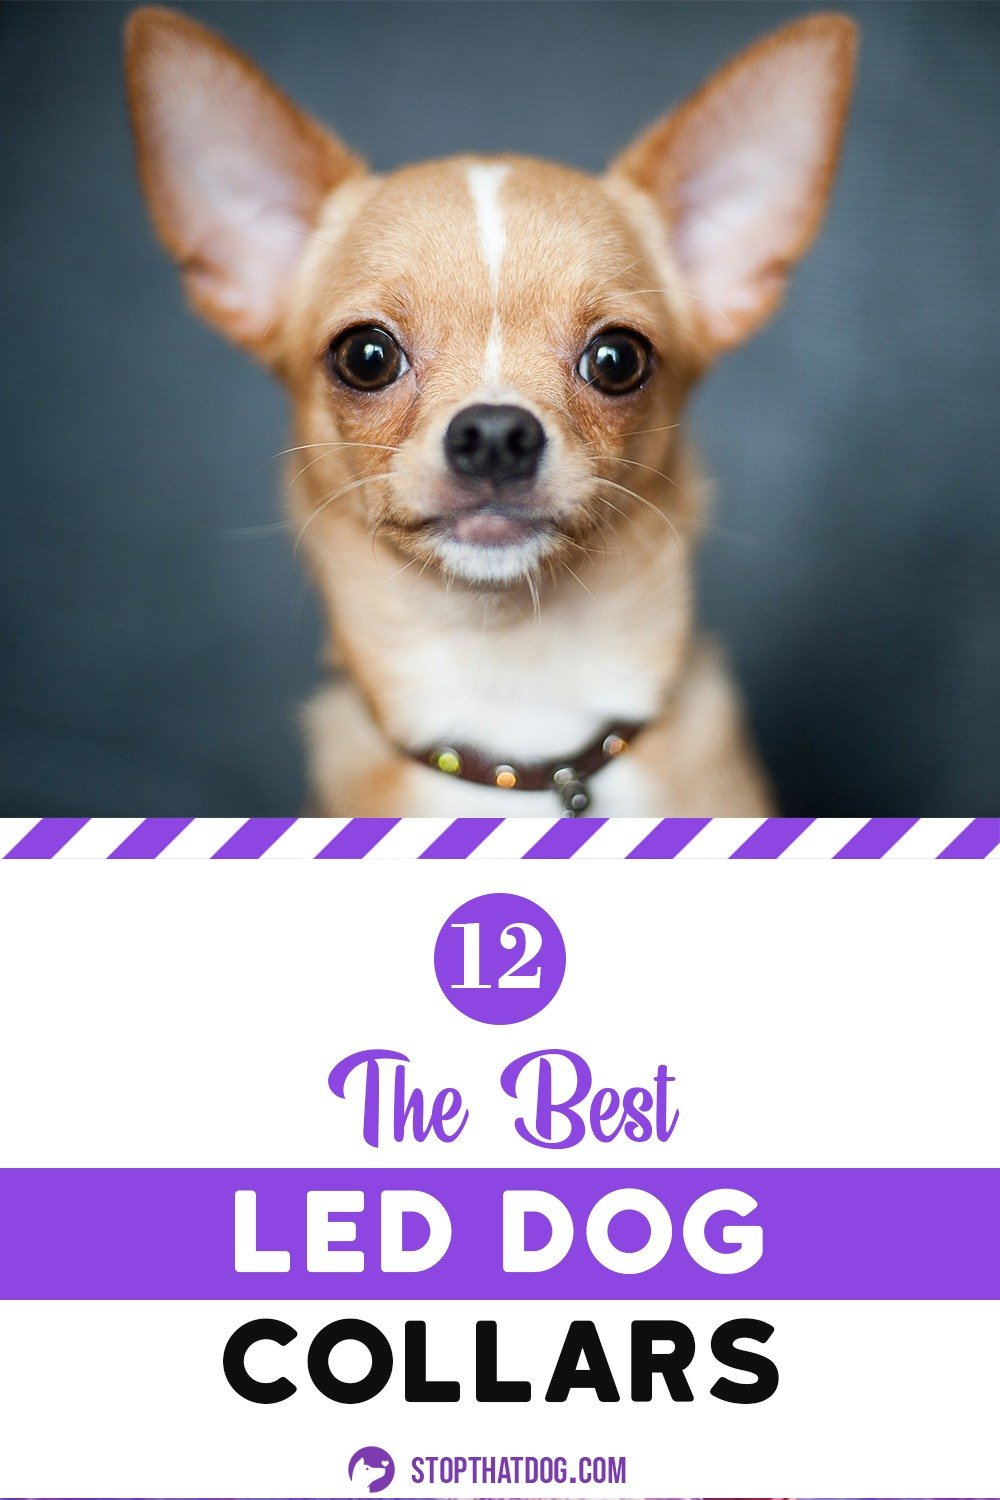 LED dog collars are an excellent way to improve your dog\'s visibility during those twilight hours. This guide highlights the best LED dog collars on the market.